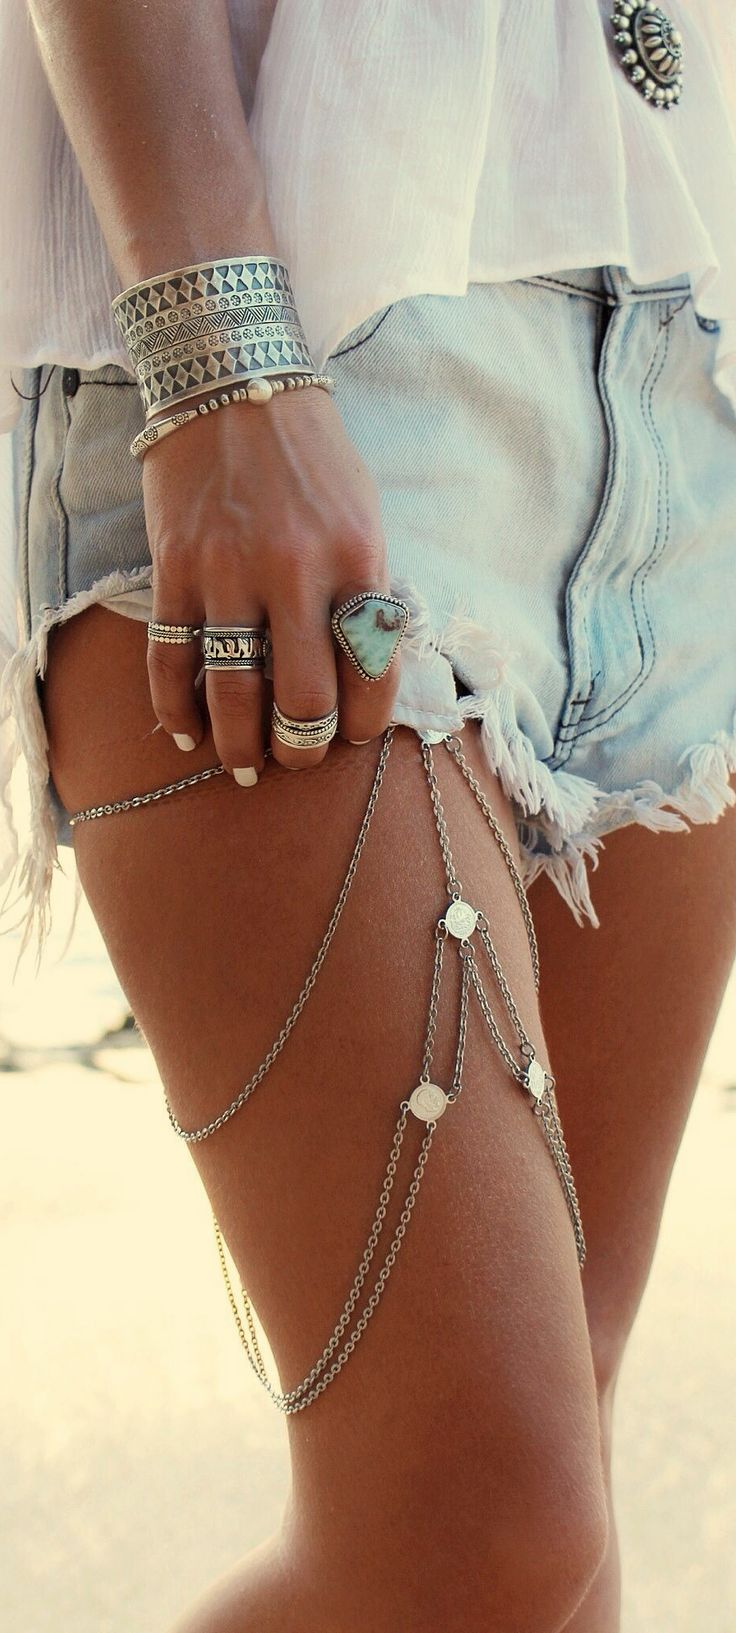 Does anyone know where you can find this type of jewelry?